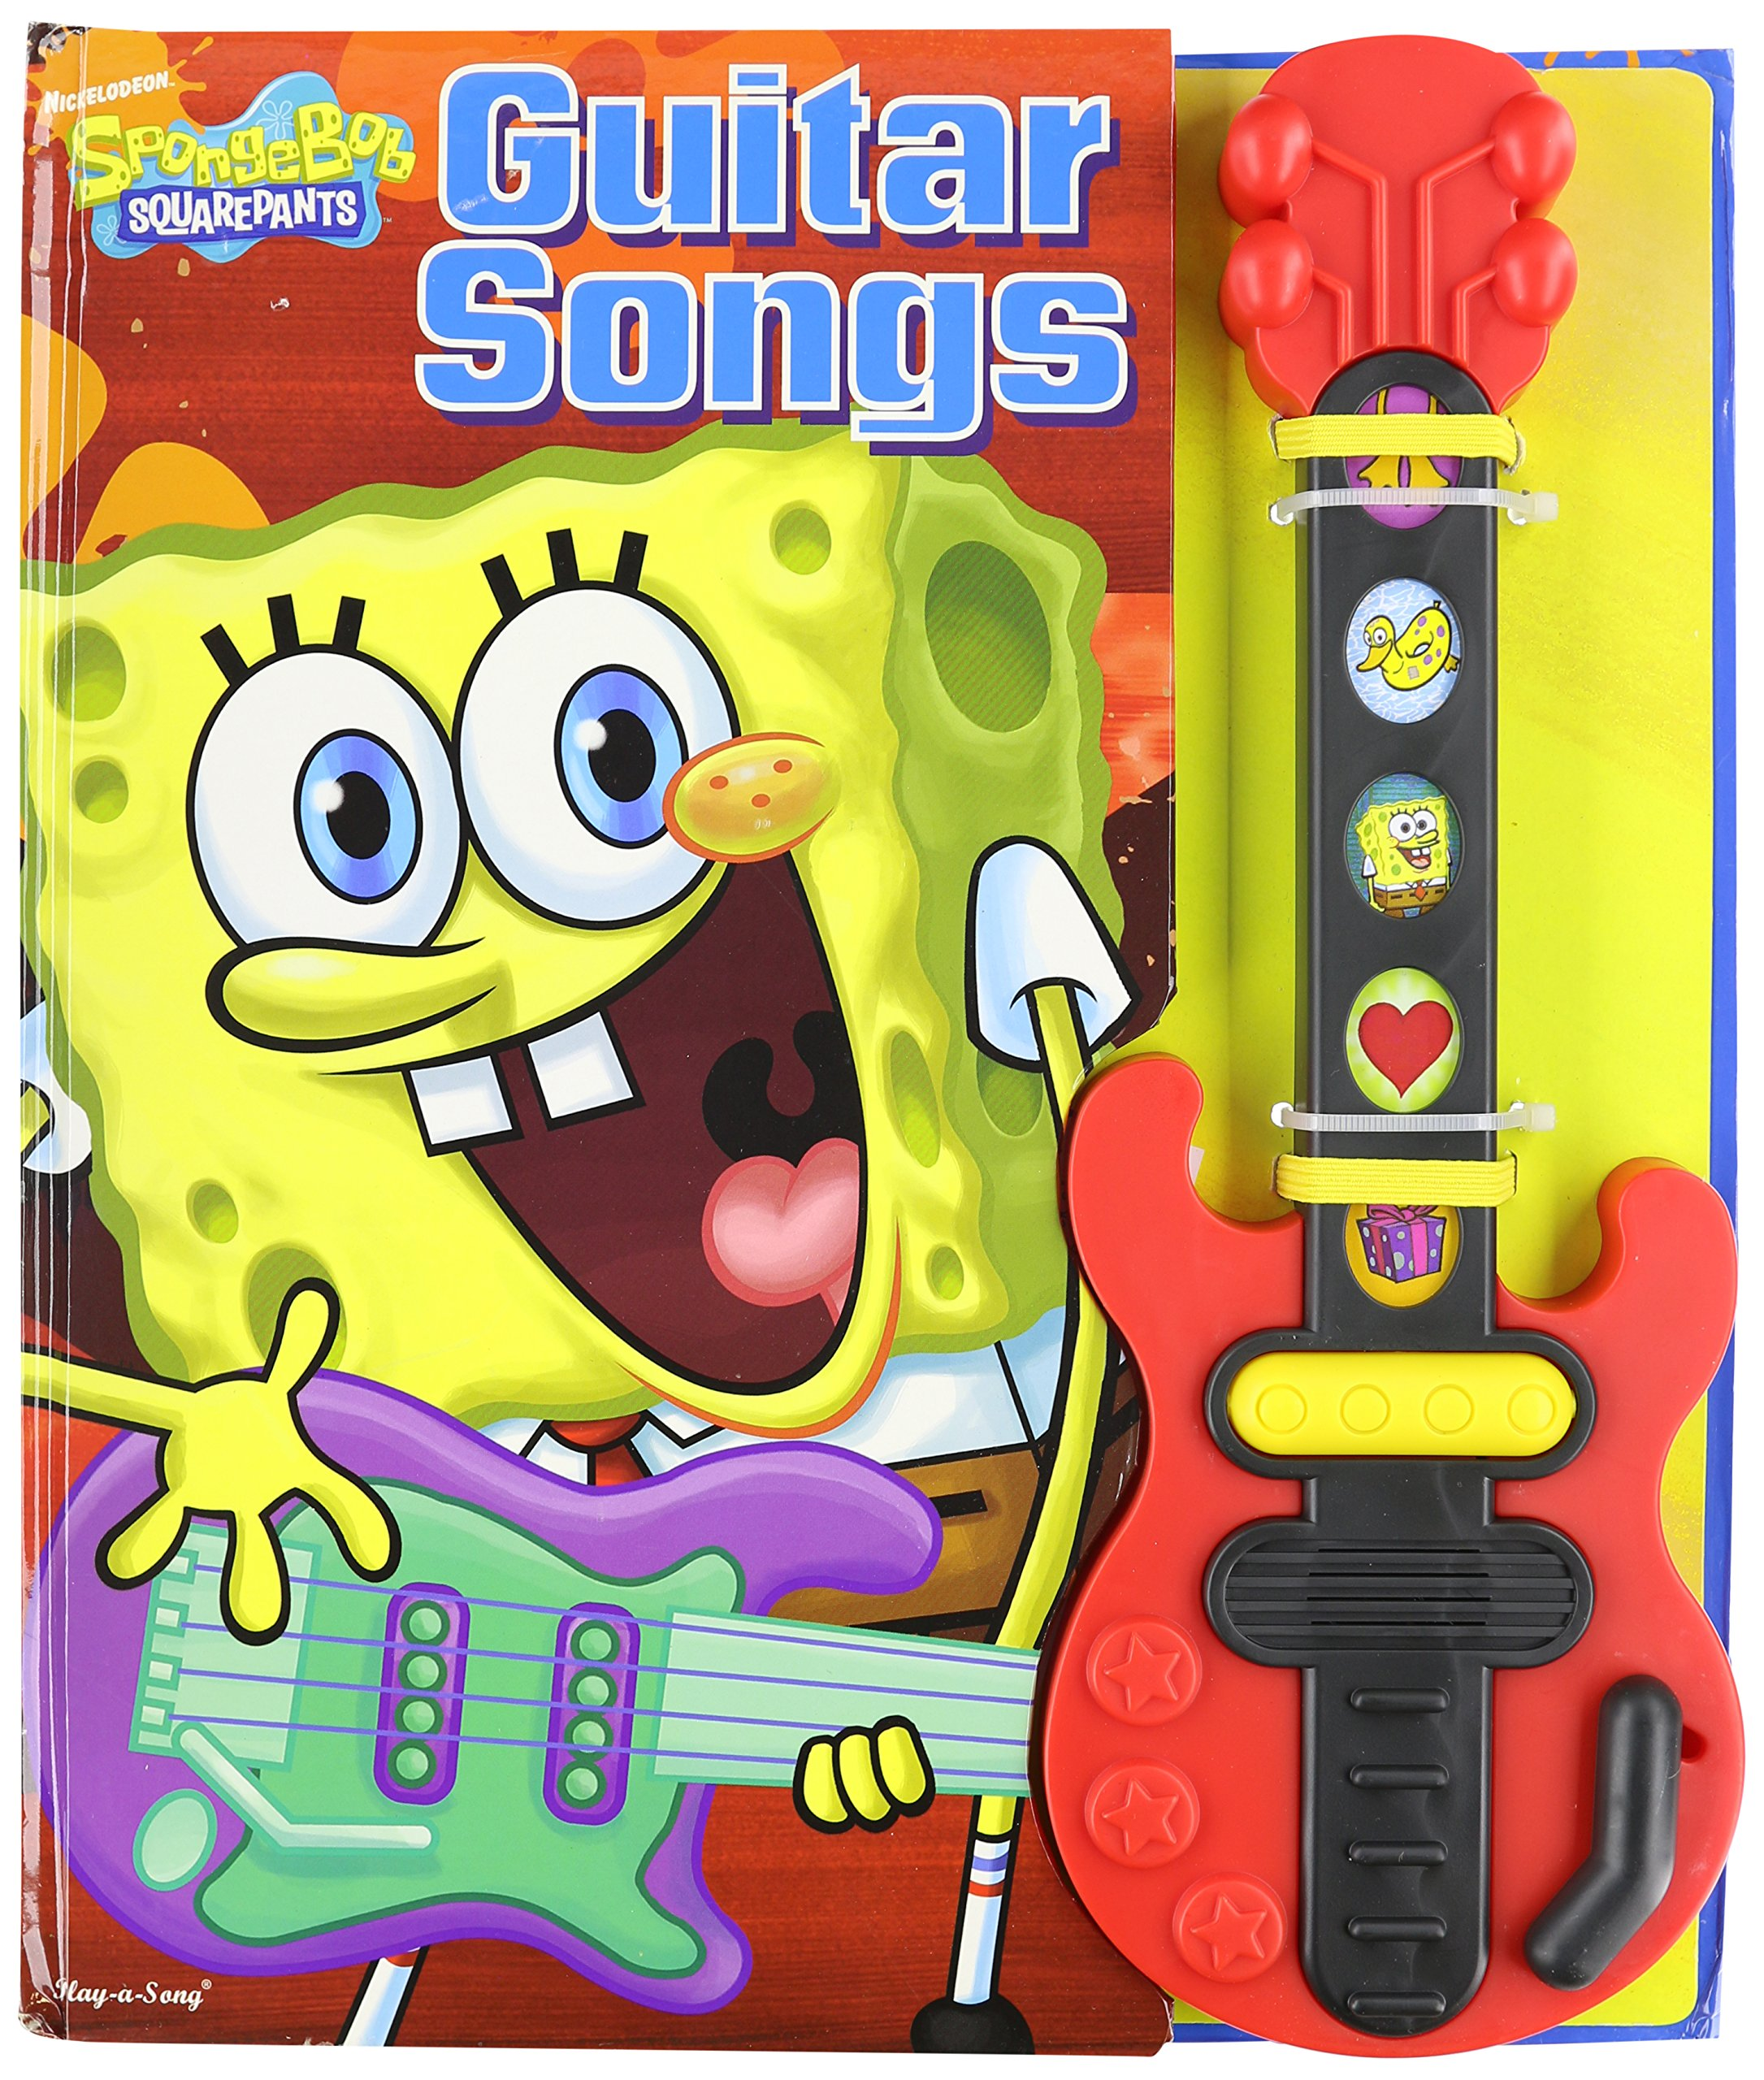 guitar songs songs for a duck at sea encyclopedia spongebobia